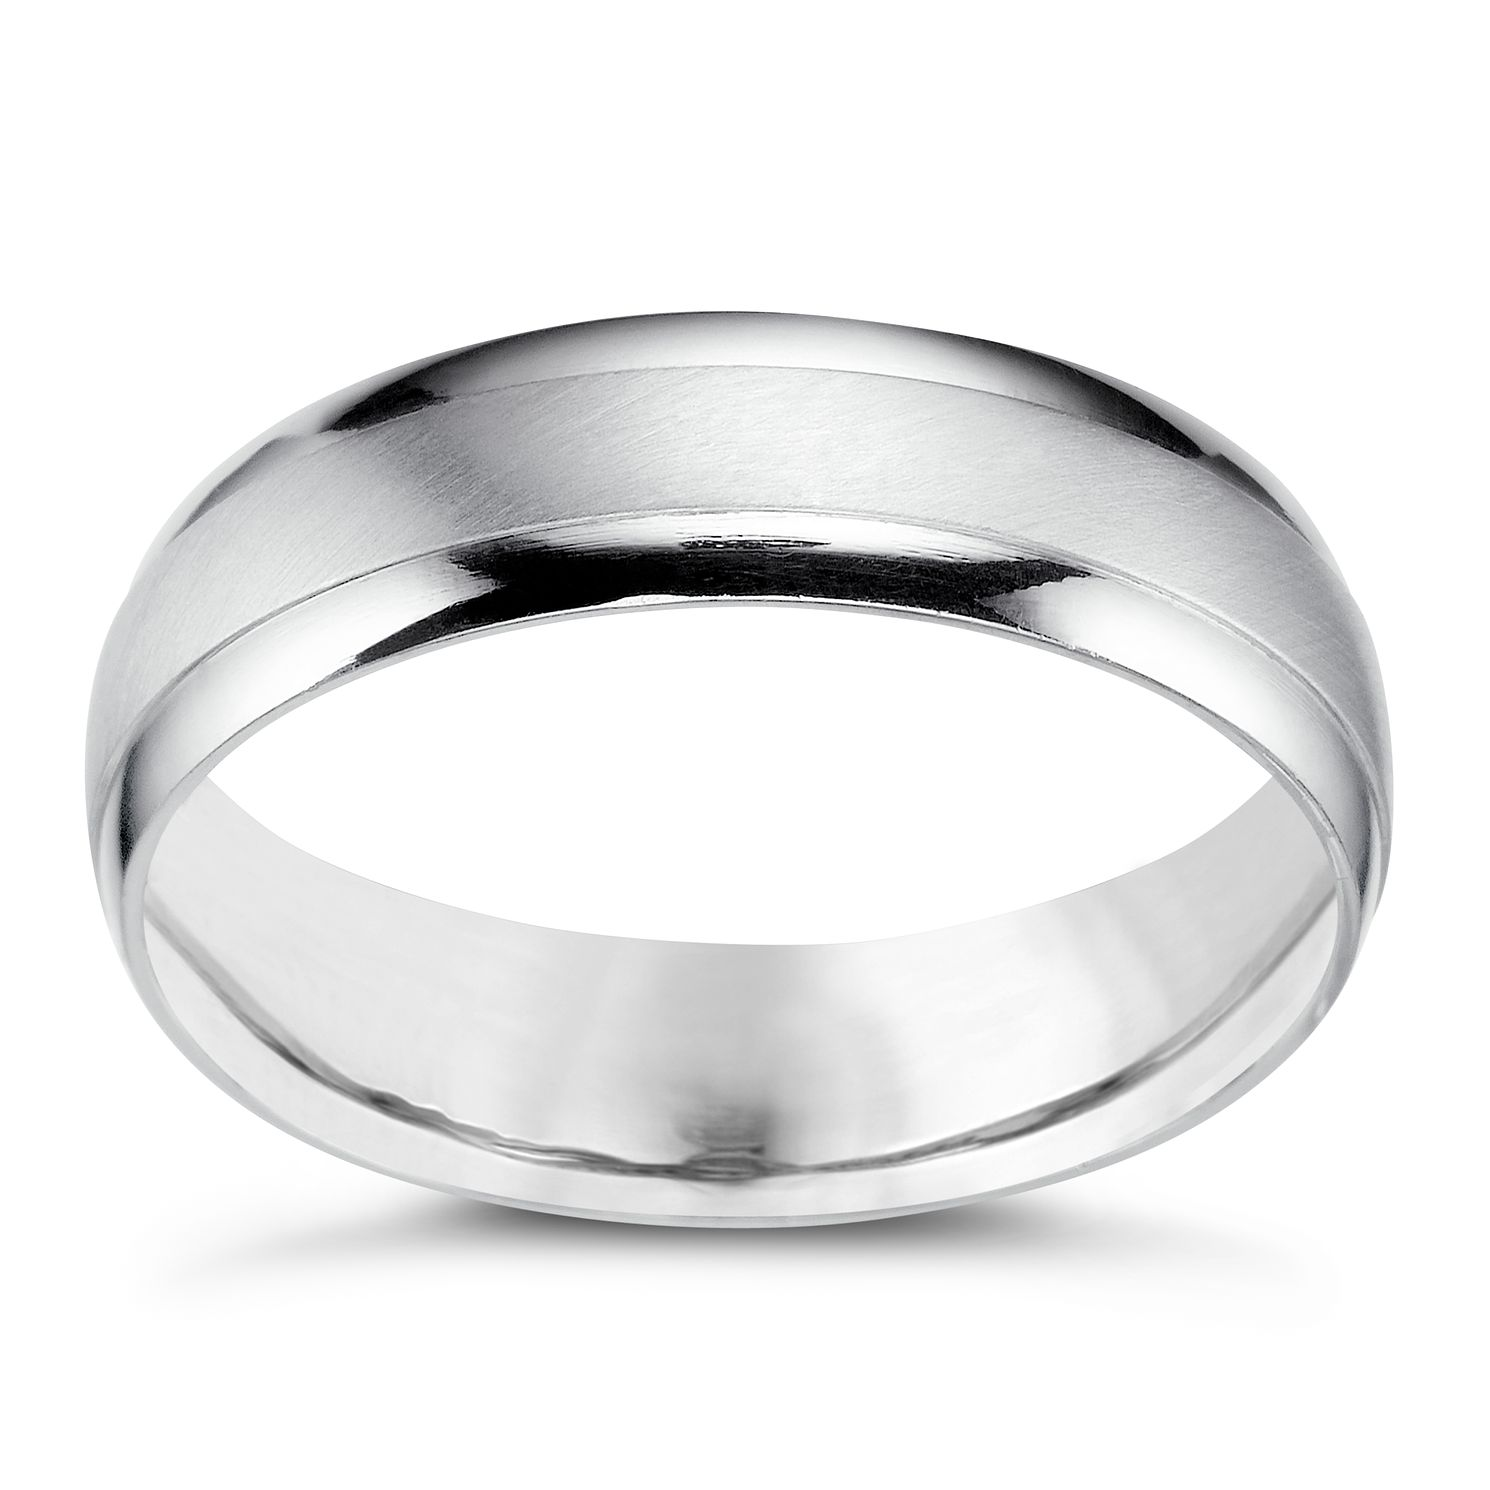 Platinum wedding rings ladies mens rings ernest jones platinum 5mm court wedding ring product number 5077621 junglespirit Gallery